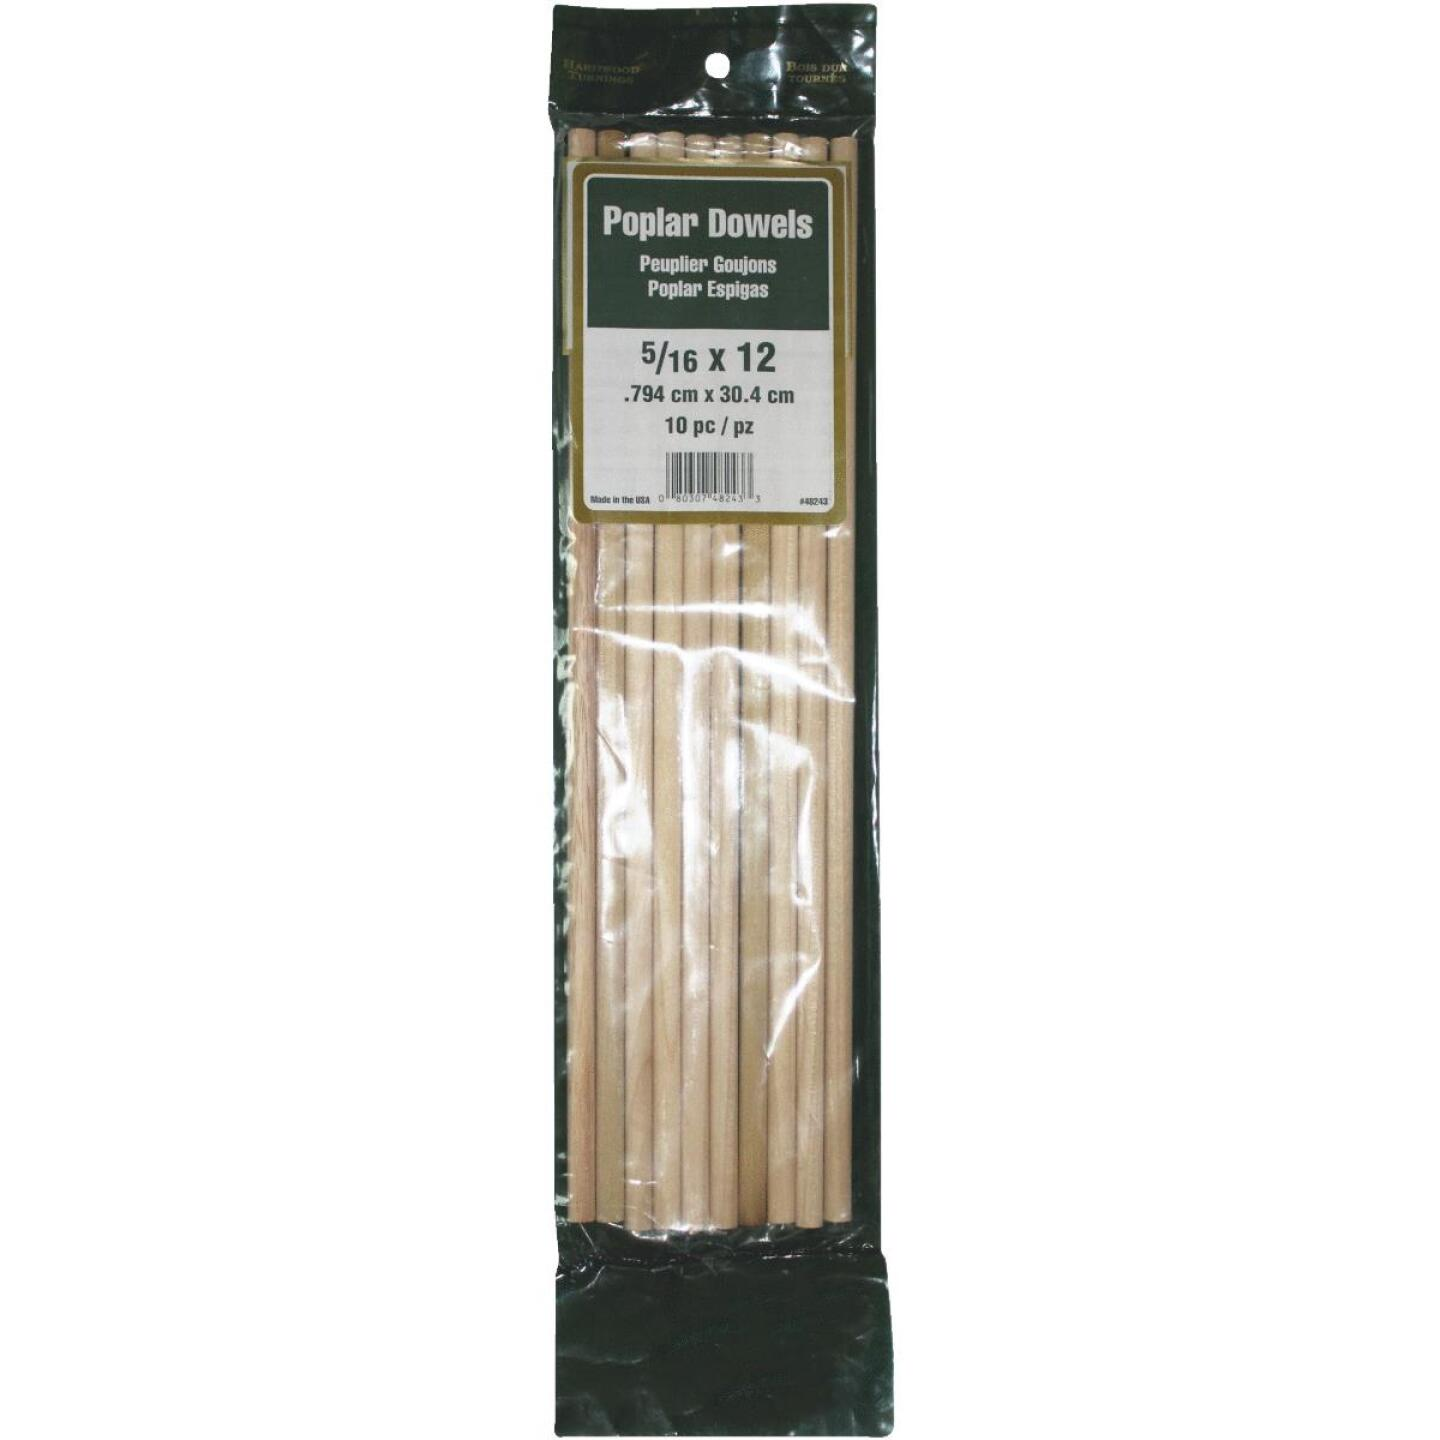 Madison Mill 5/16 In. x 12 In. Poplar Dowel Rod (10 Pieces) Image 1